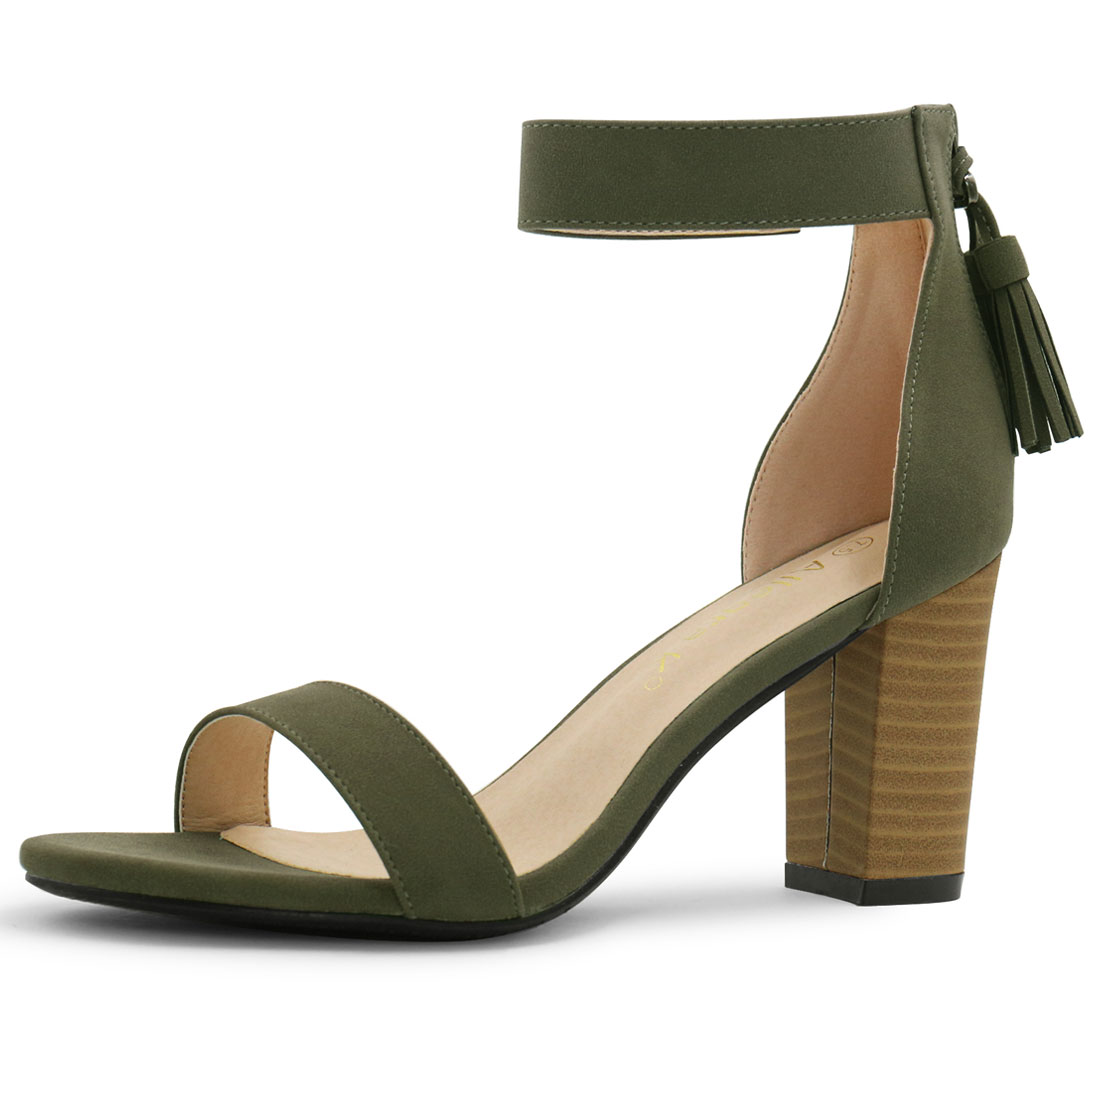 01da534a246 Unique Bargains Women s Open Toe Tassel Stacked Heel Ankle Strap Sandals  Khaki Green (Size 4.5